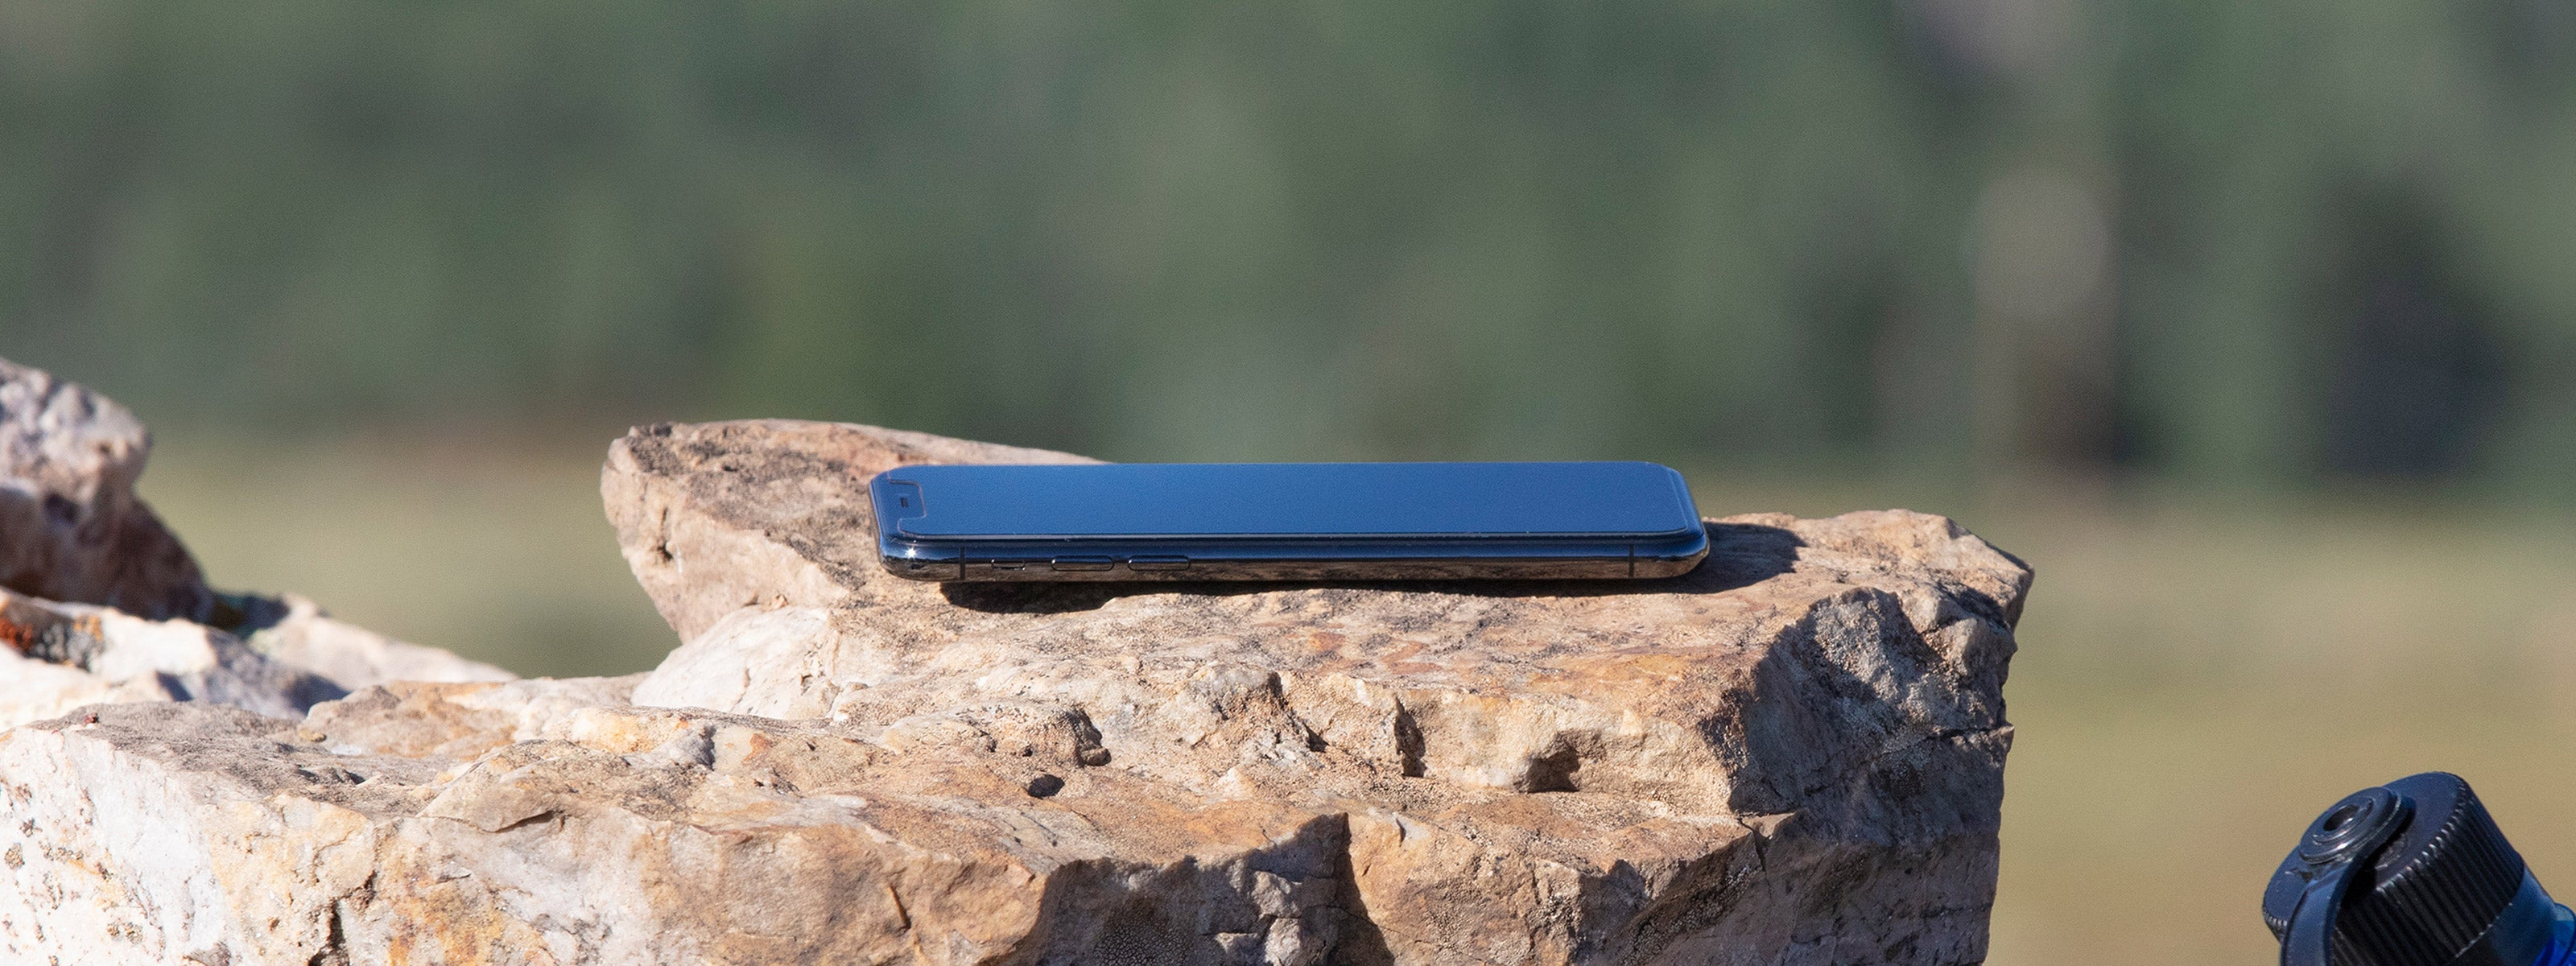 iPhone 11 laying on rock